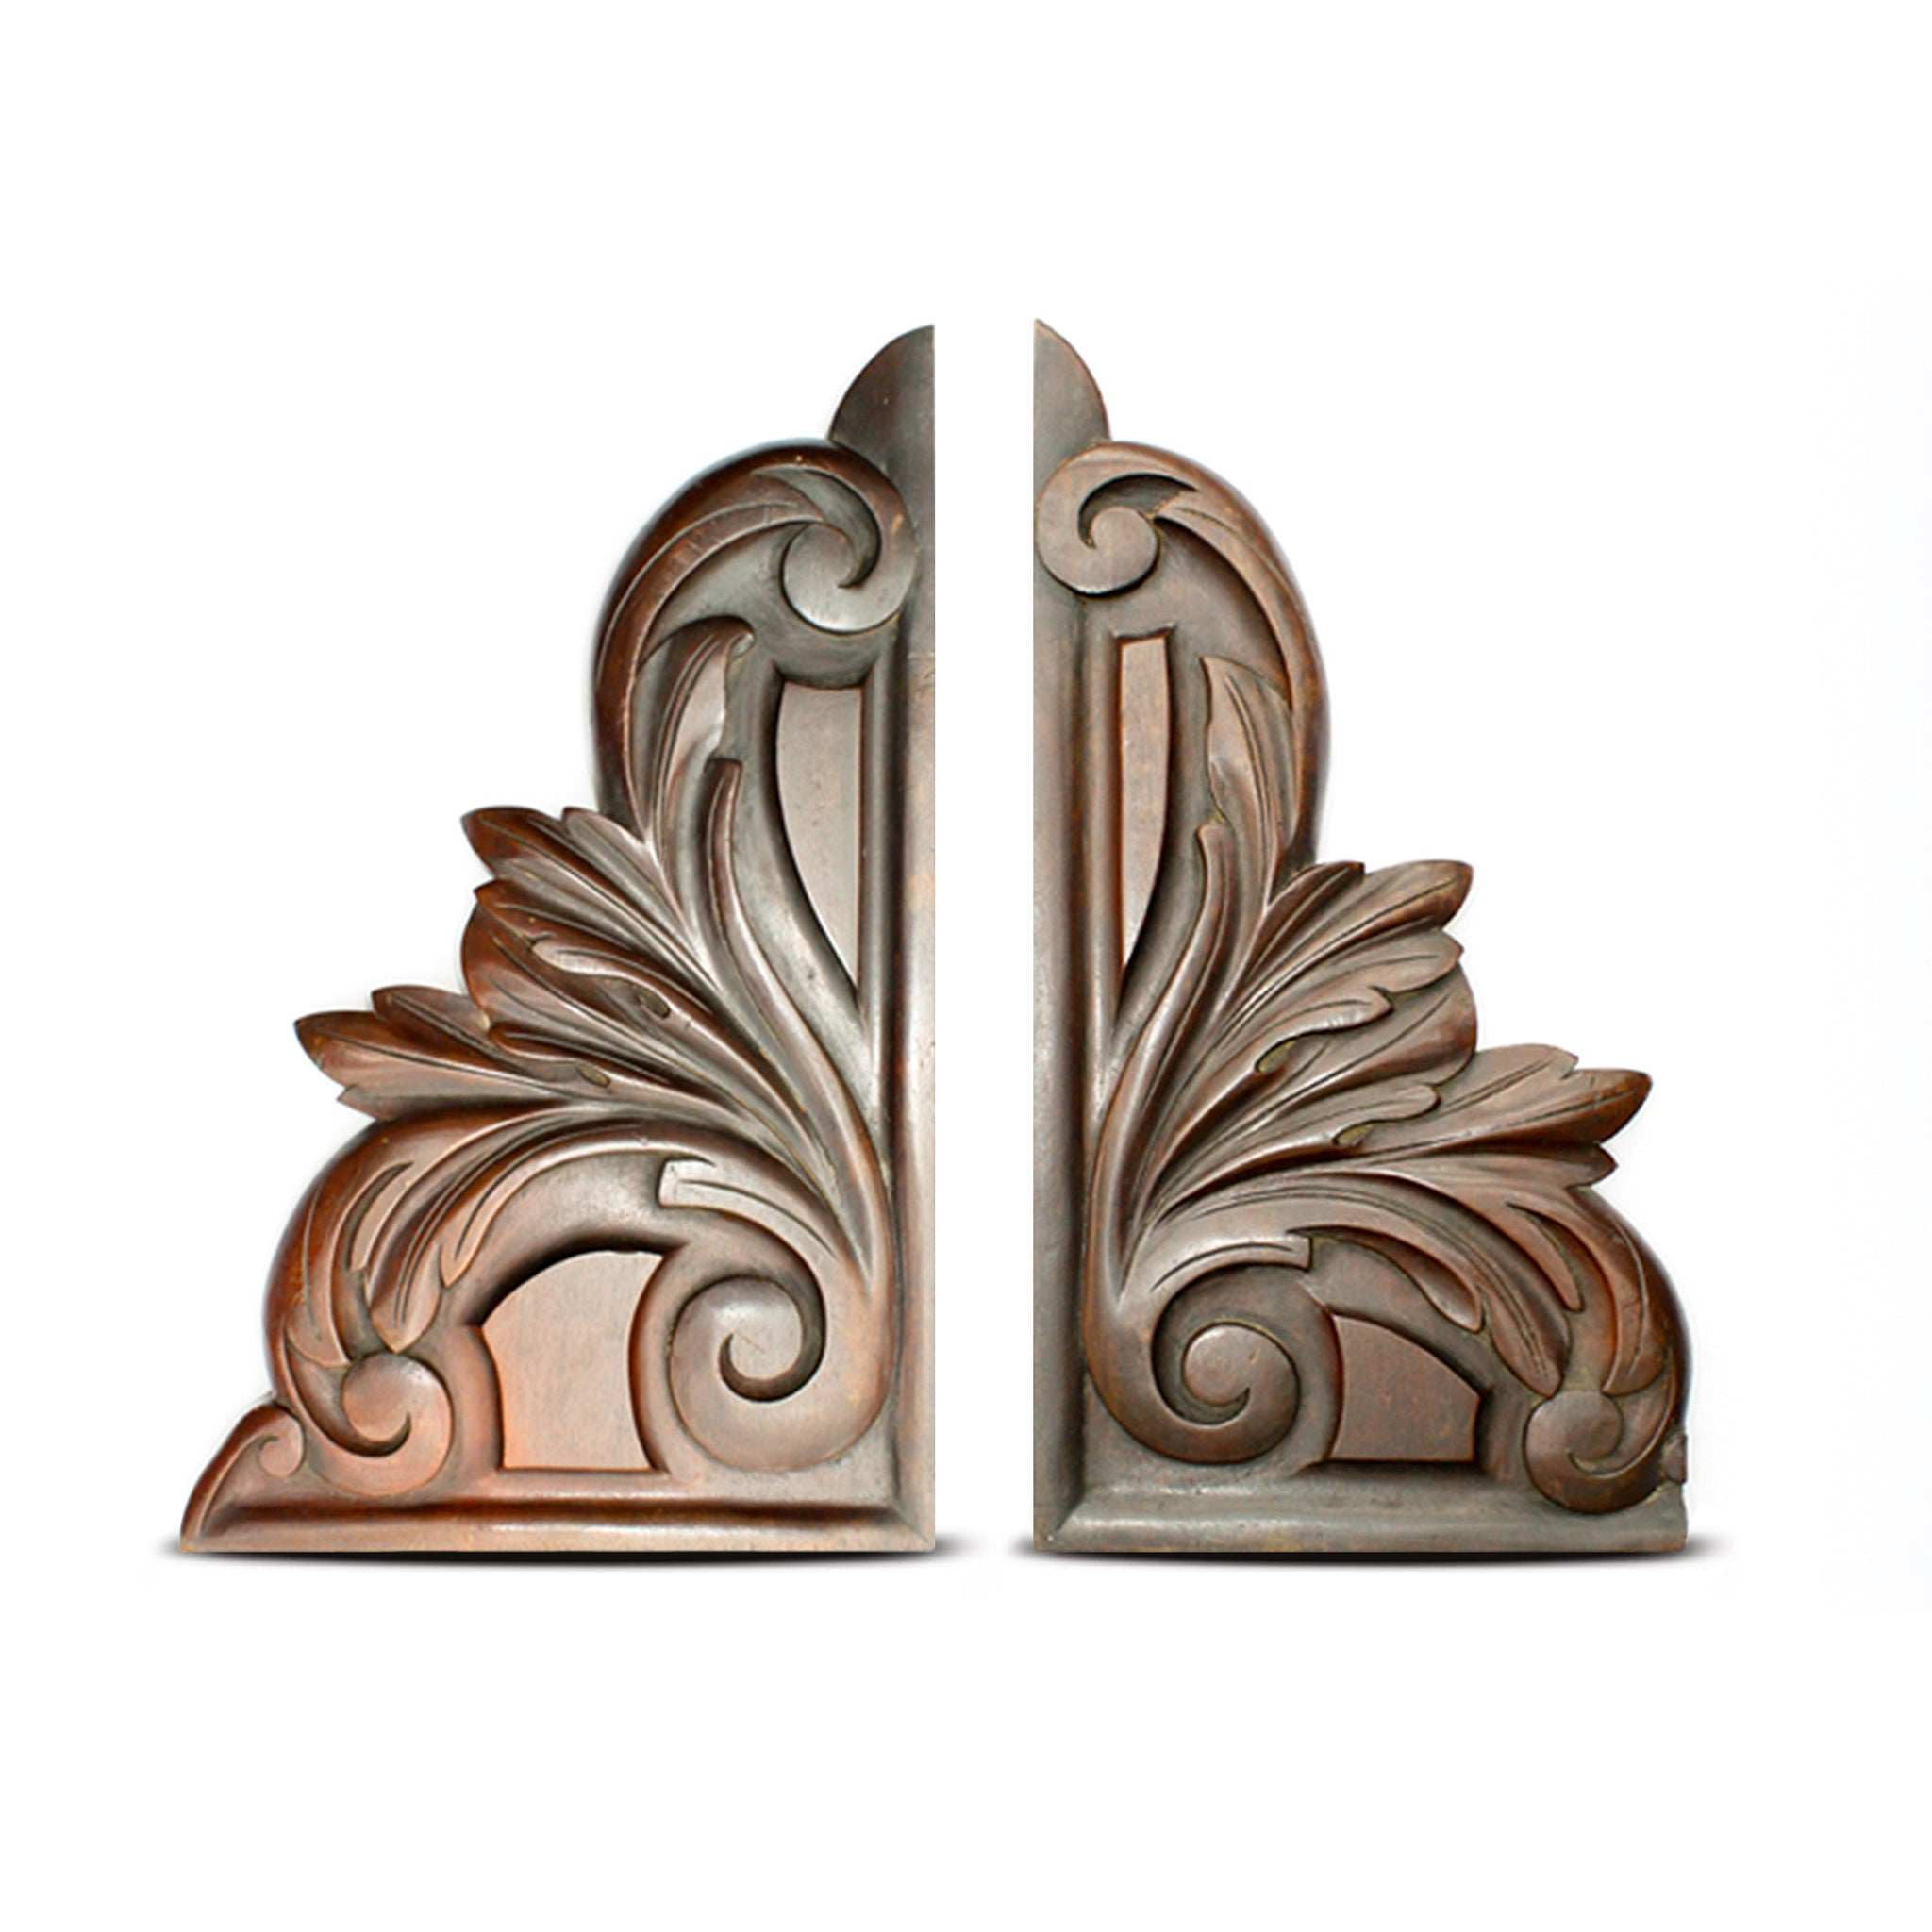 A pair of decorative antique French Carved Corner Brackets. Find this and other Beautiful Vintage items for you home at Intovintage.co.uk.